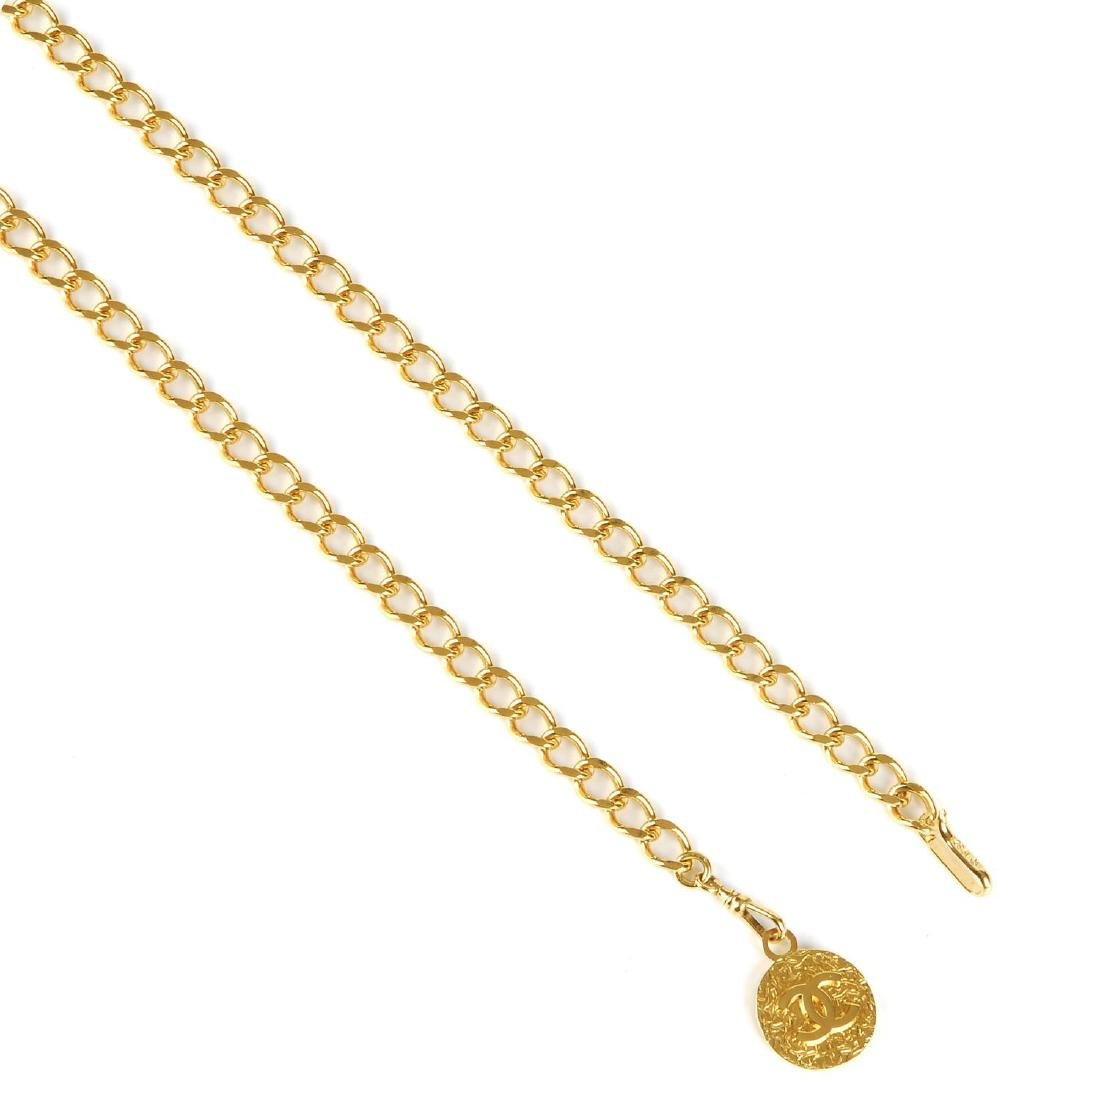 CHANEL - a chain belt. Featuring a gold-tone chain with